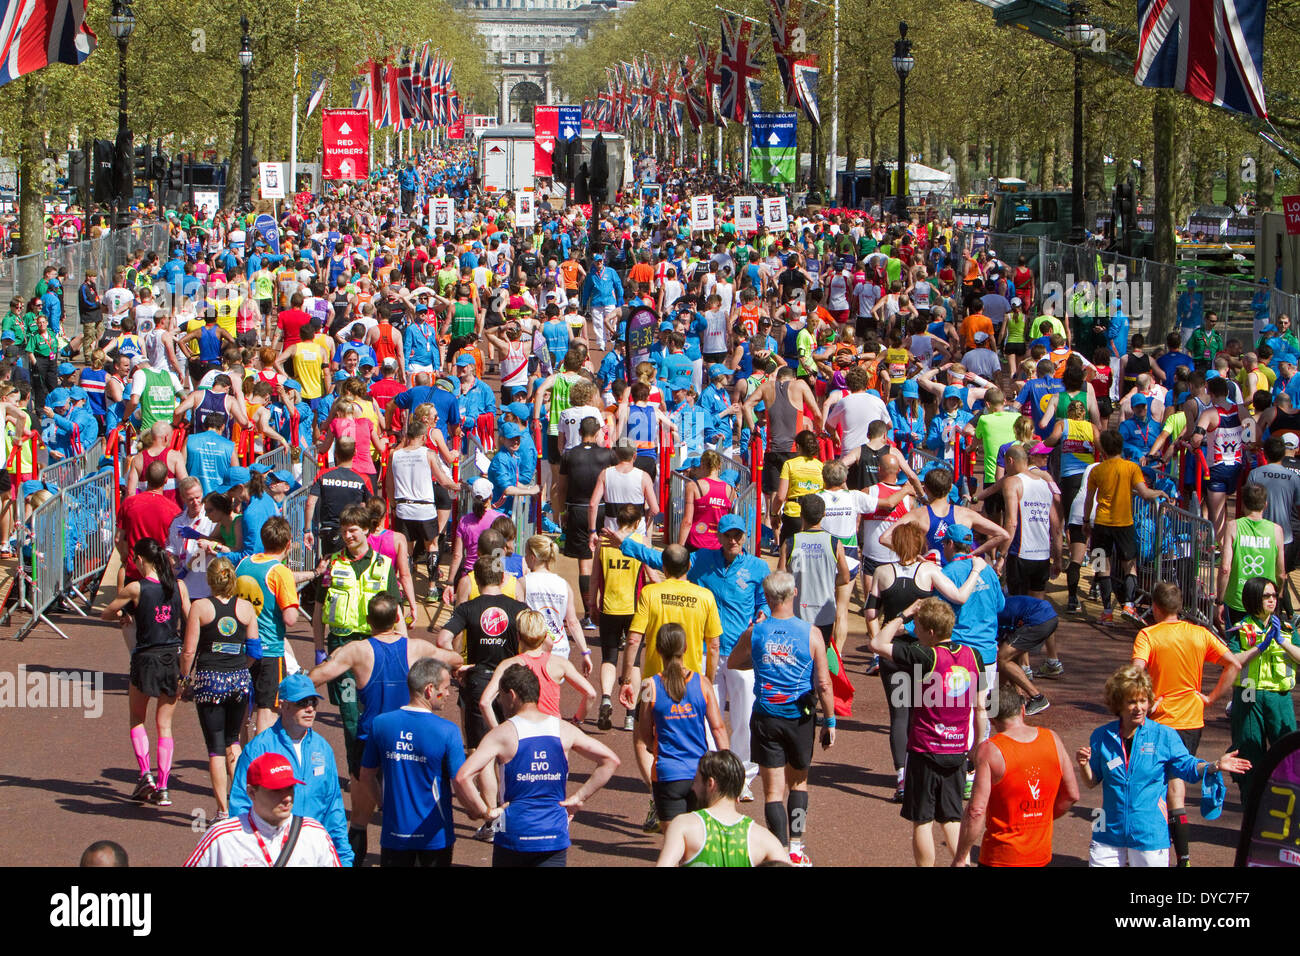 London,UK,13th April 2014,A sea of runners after finishing the London Marathon 201 Credit: Keith Larby/Alamy Live News - Stock Image